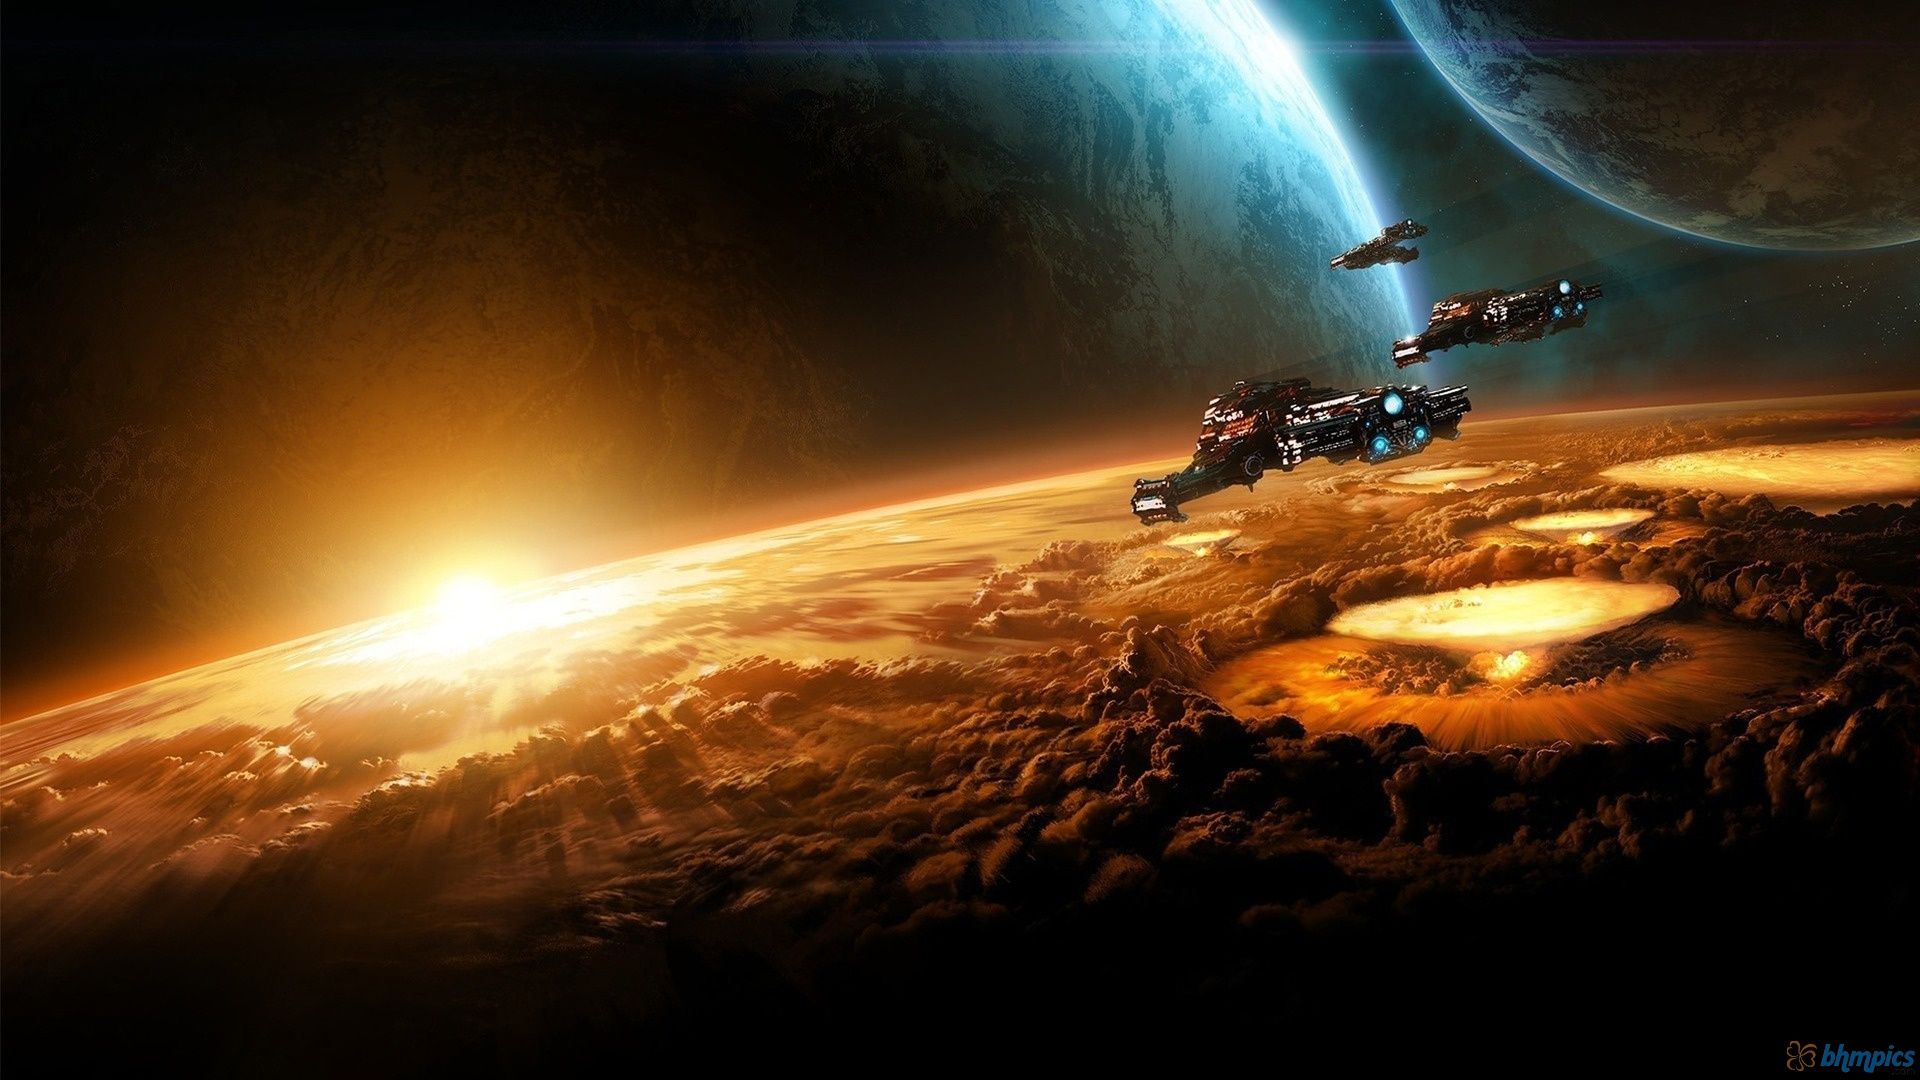 Spaceship Sci Fi Wallpaper Starcraft Wallpaper Backgrounds